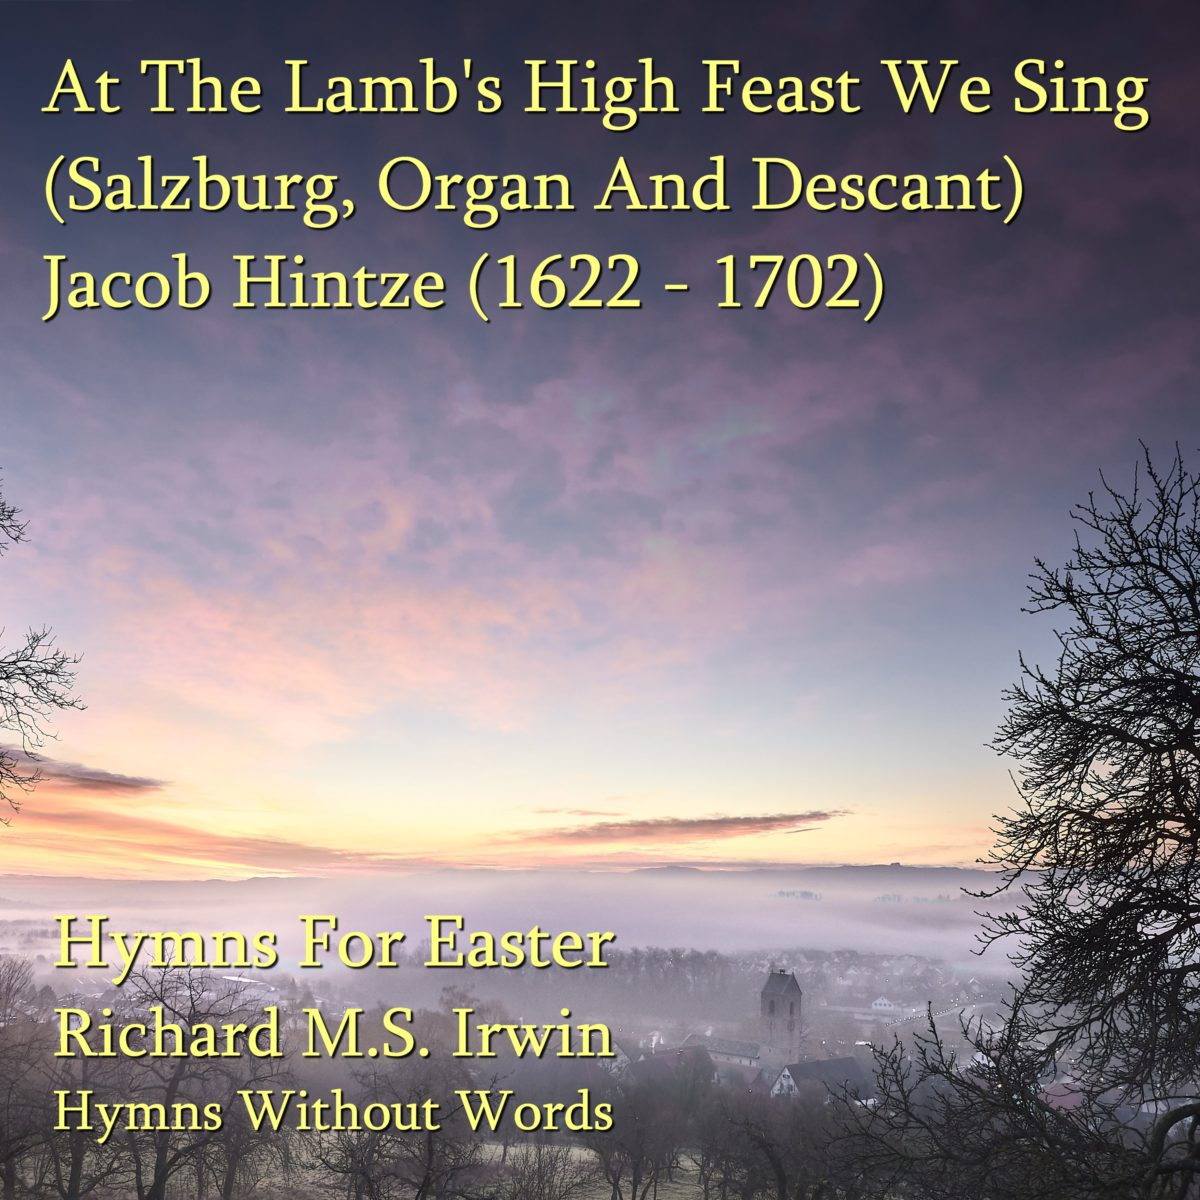 At The Lamb'S High Feast We Sing (Salzburg, Organ And Descant, 4 Verses)